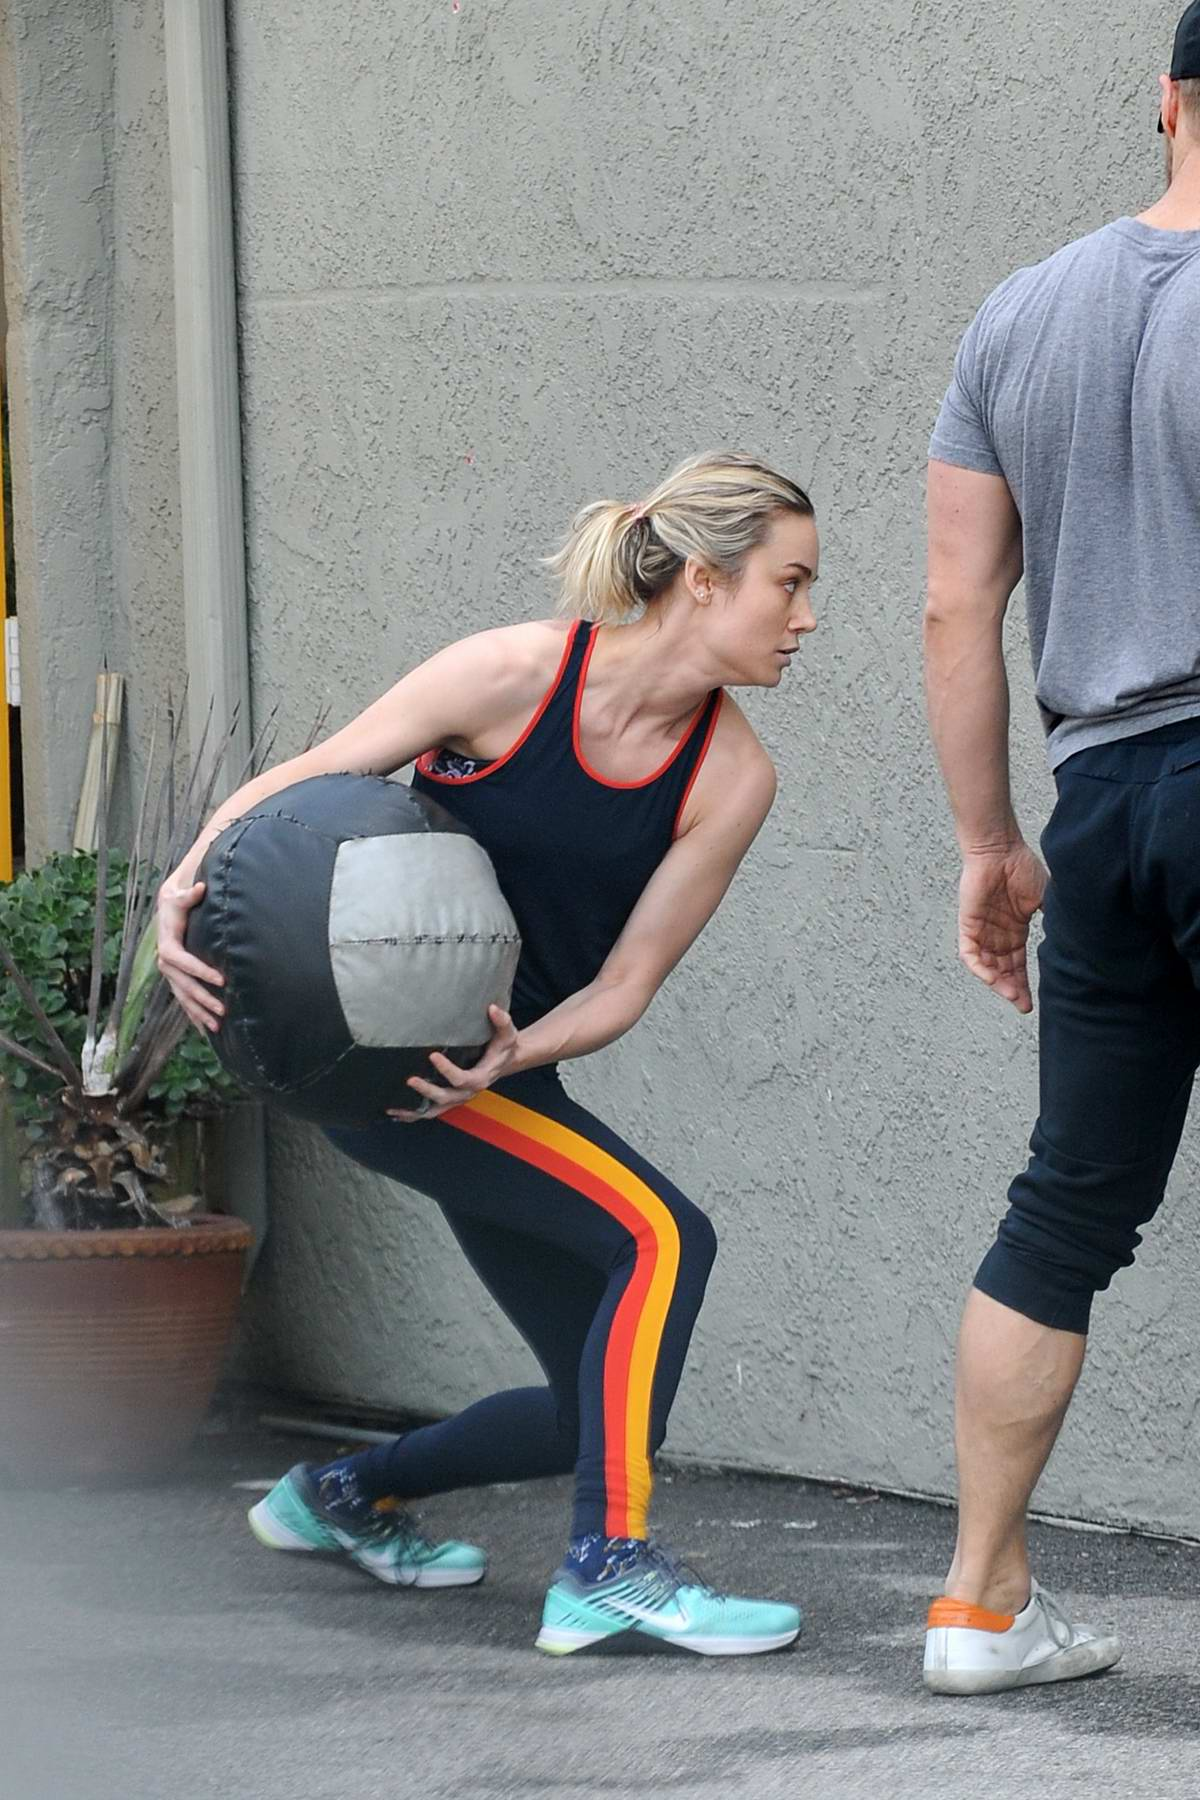 Brie Larson seen during an intense workout session at the gym in Los Angeles